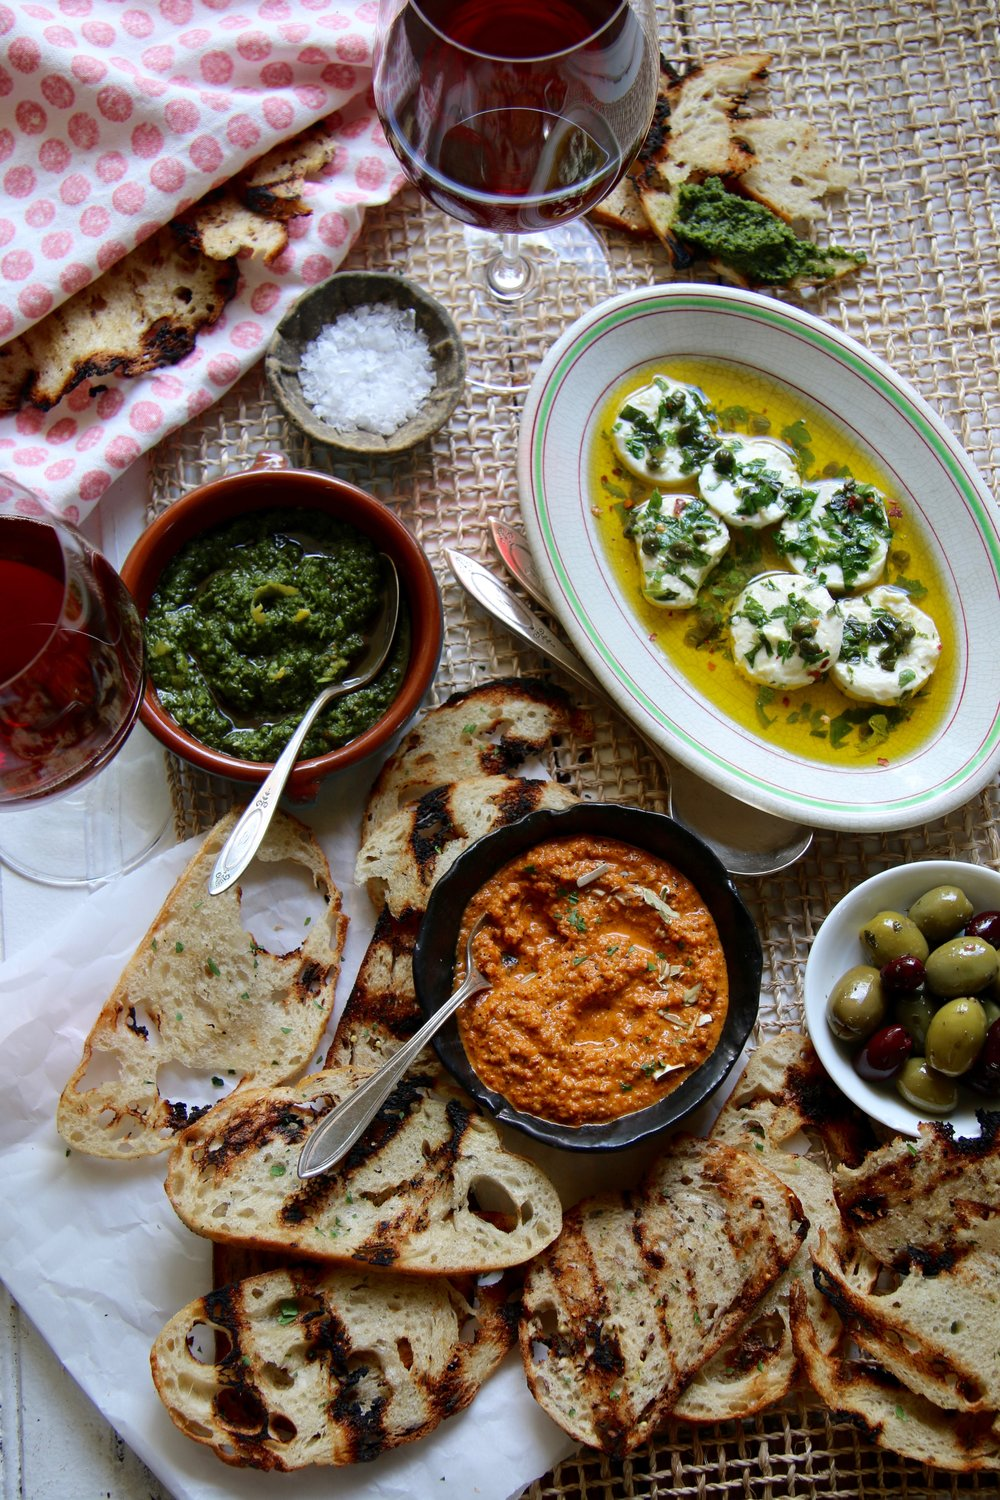 Ready for the toppings? - This garlicy grilled bread is incredible with the following recipes:Herbed Goat Cheese Chimichurri dipping sauceCharred Red Pepper dipping sauce